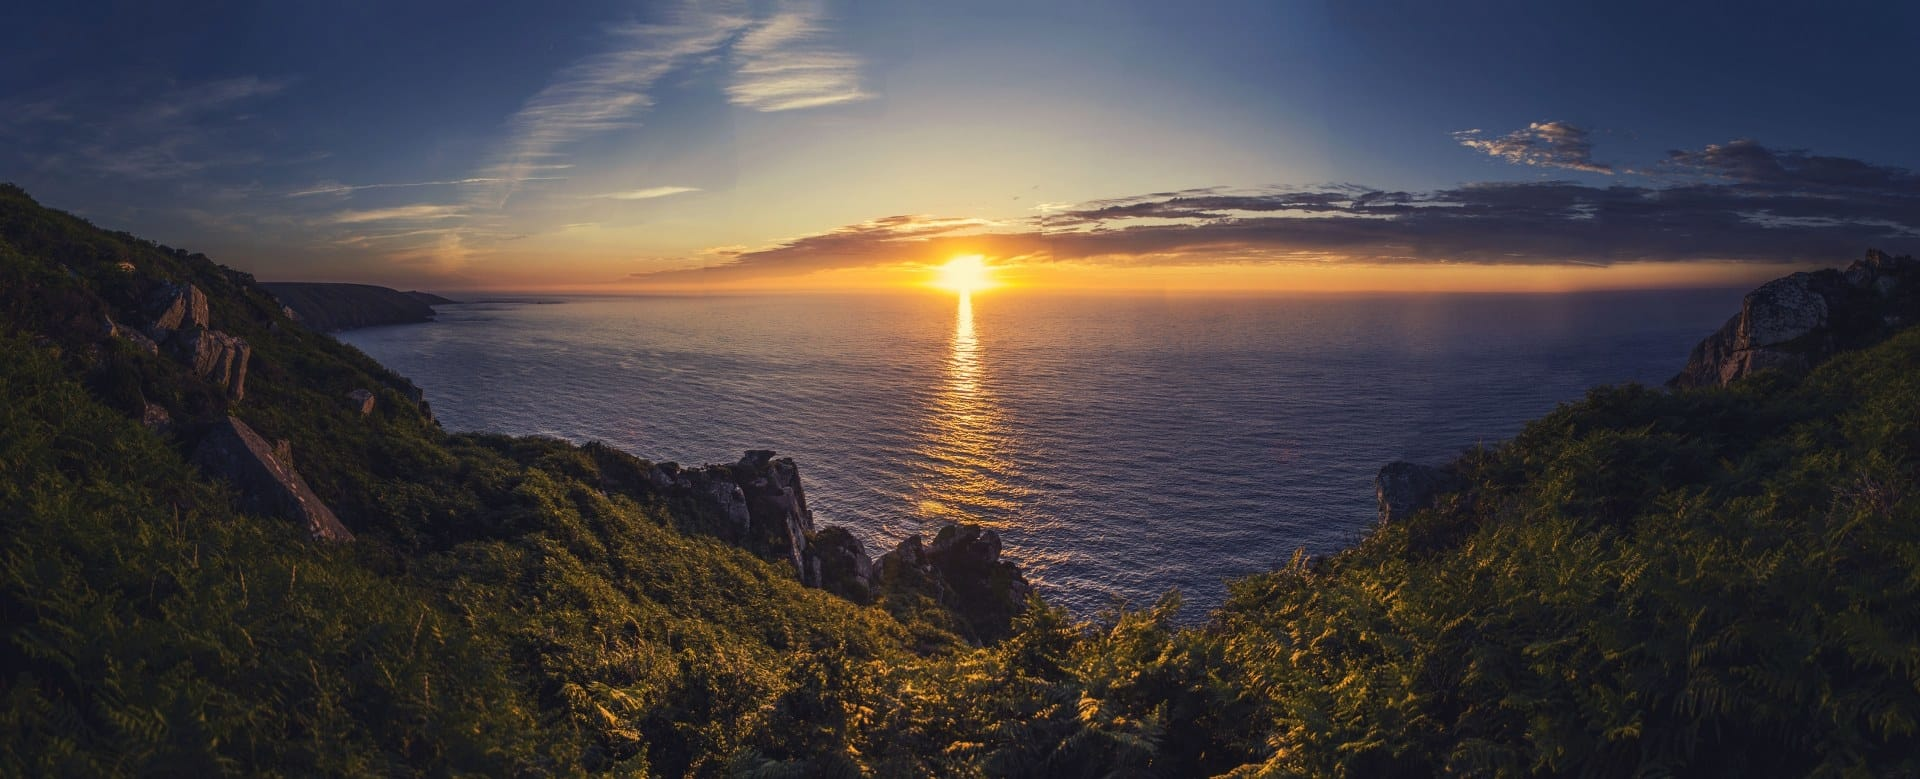 Amazing sunset taken from cliffs near St. Just, Cornwall